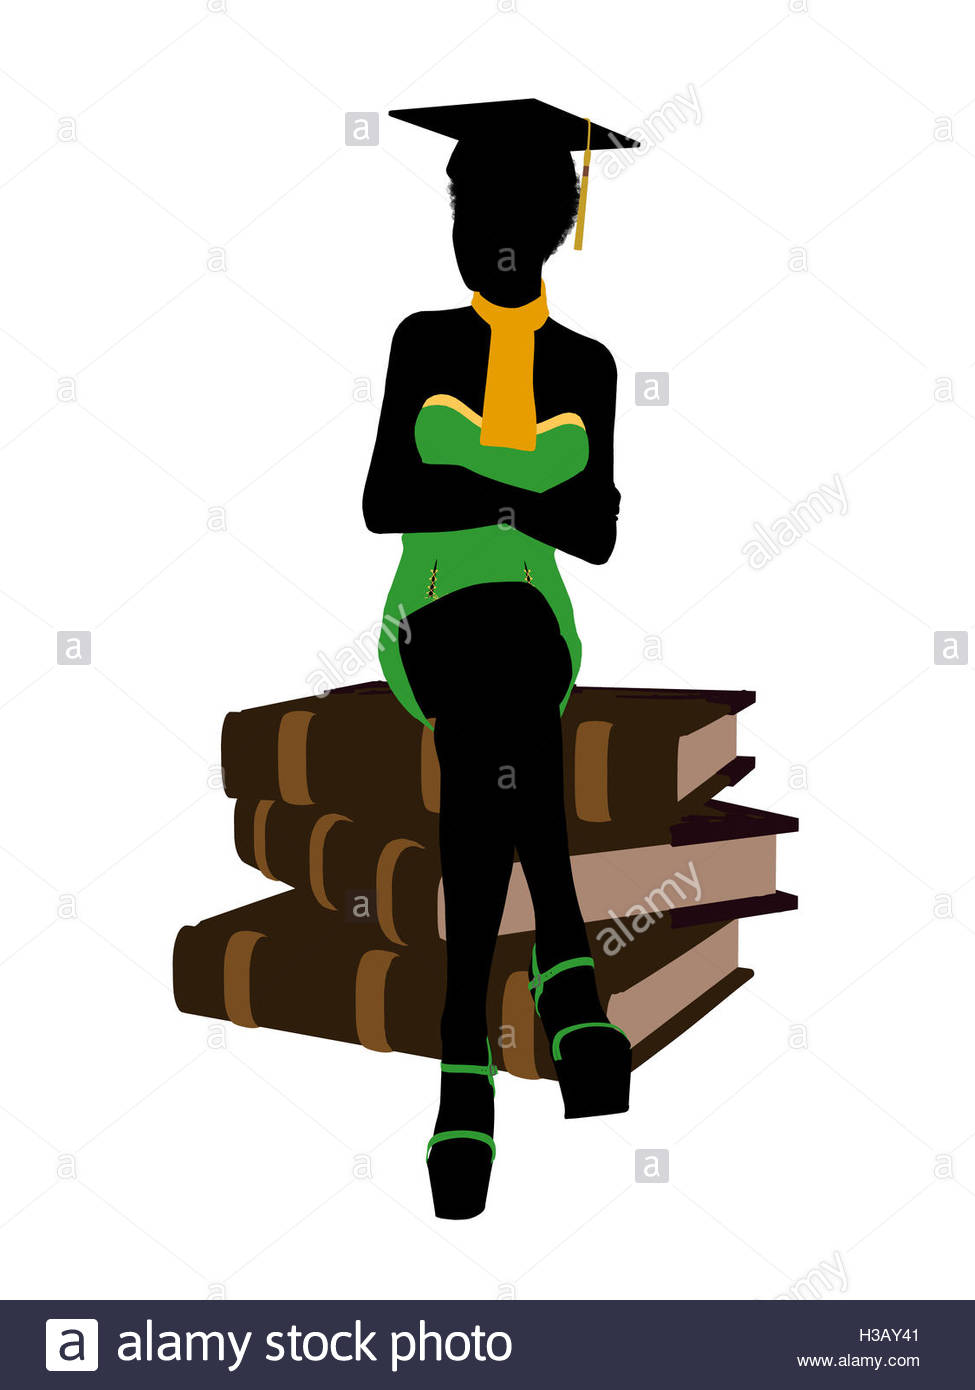 975x1390 African American Graduate Illustration Silhouette Stock Photo